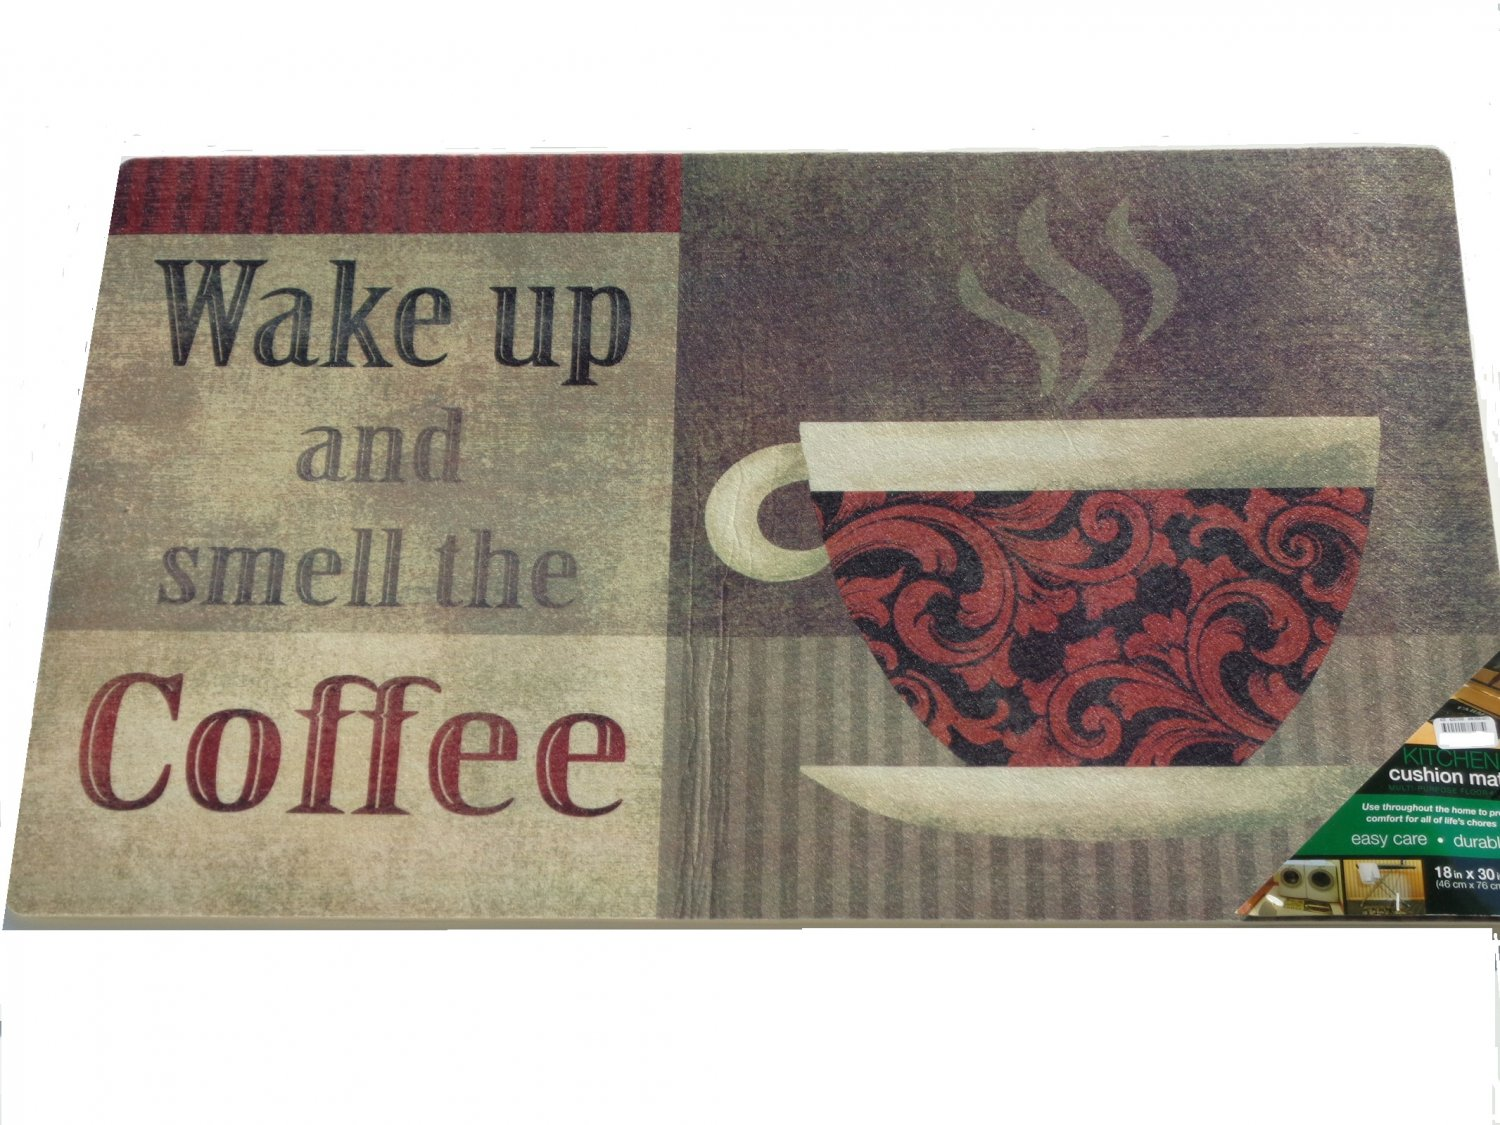 Red Rooster Coffee Garden Valley Wake Up And Smell The Coffee Kitchen Rug Cushion Mat